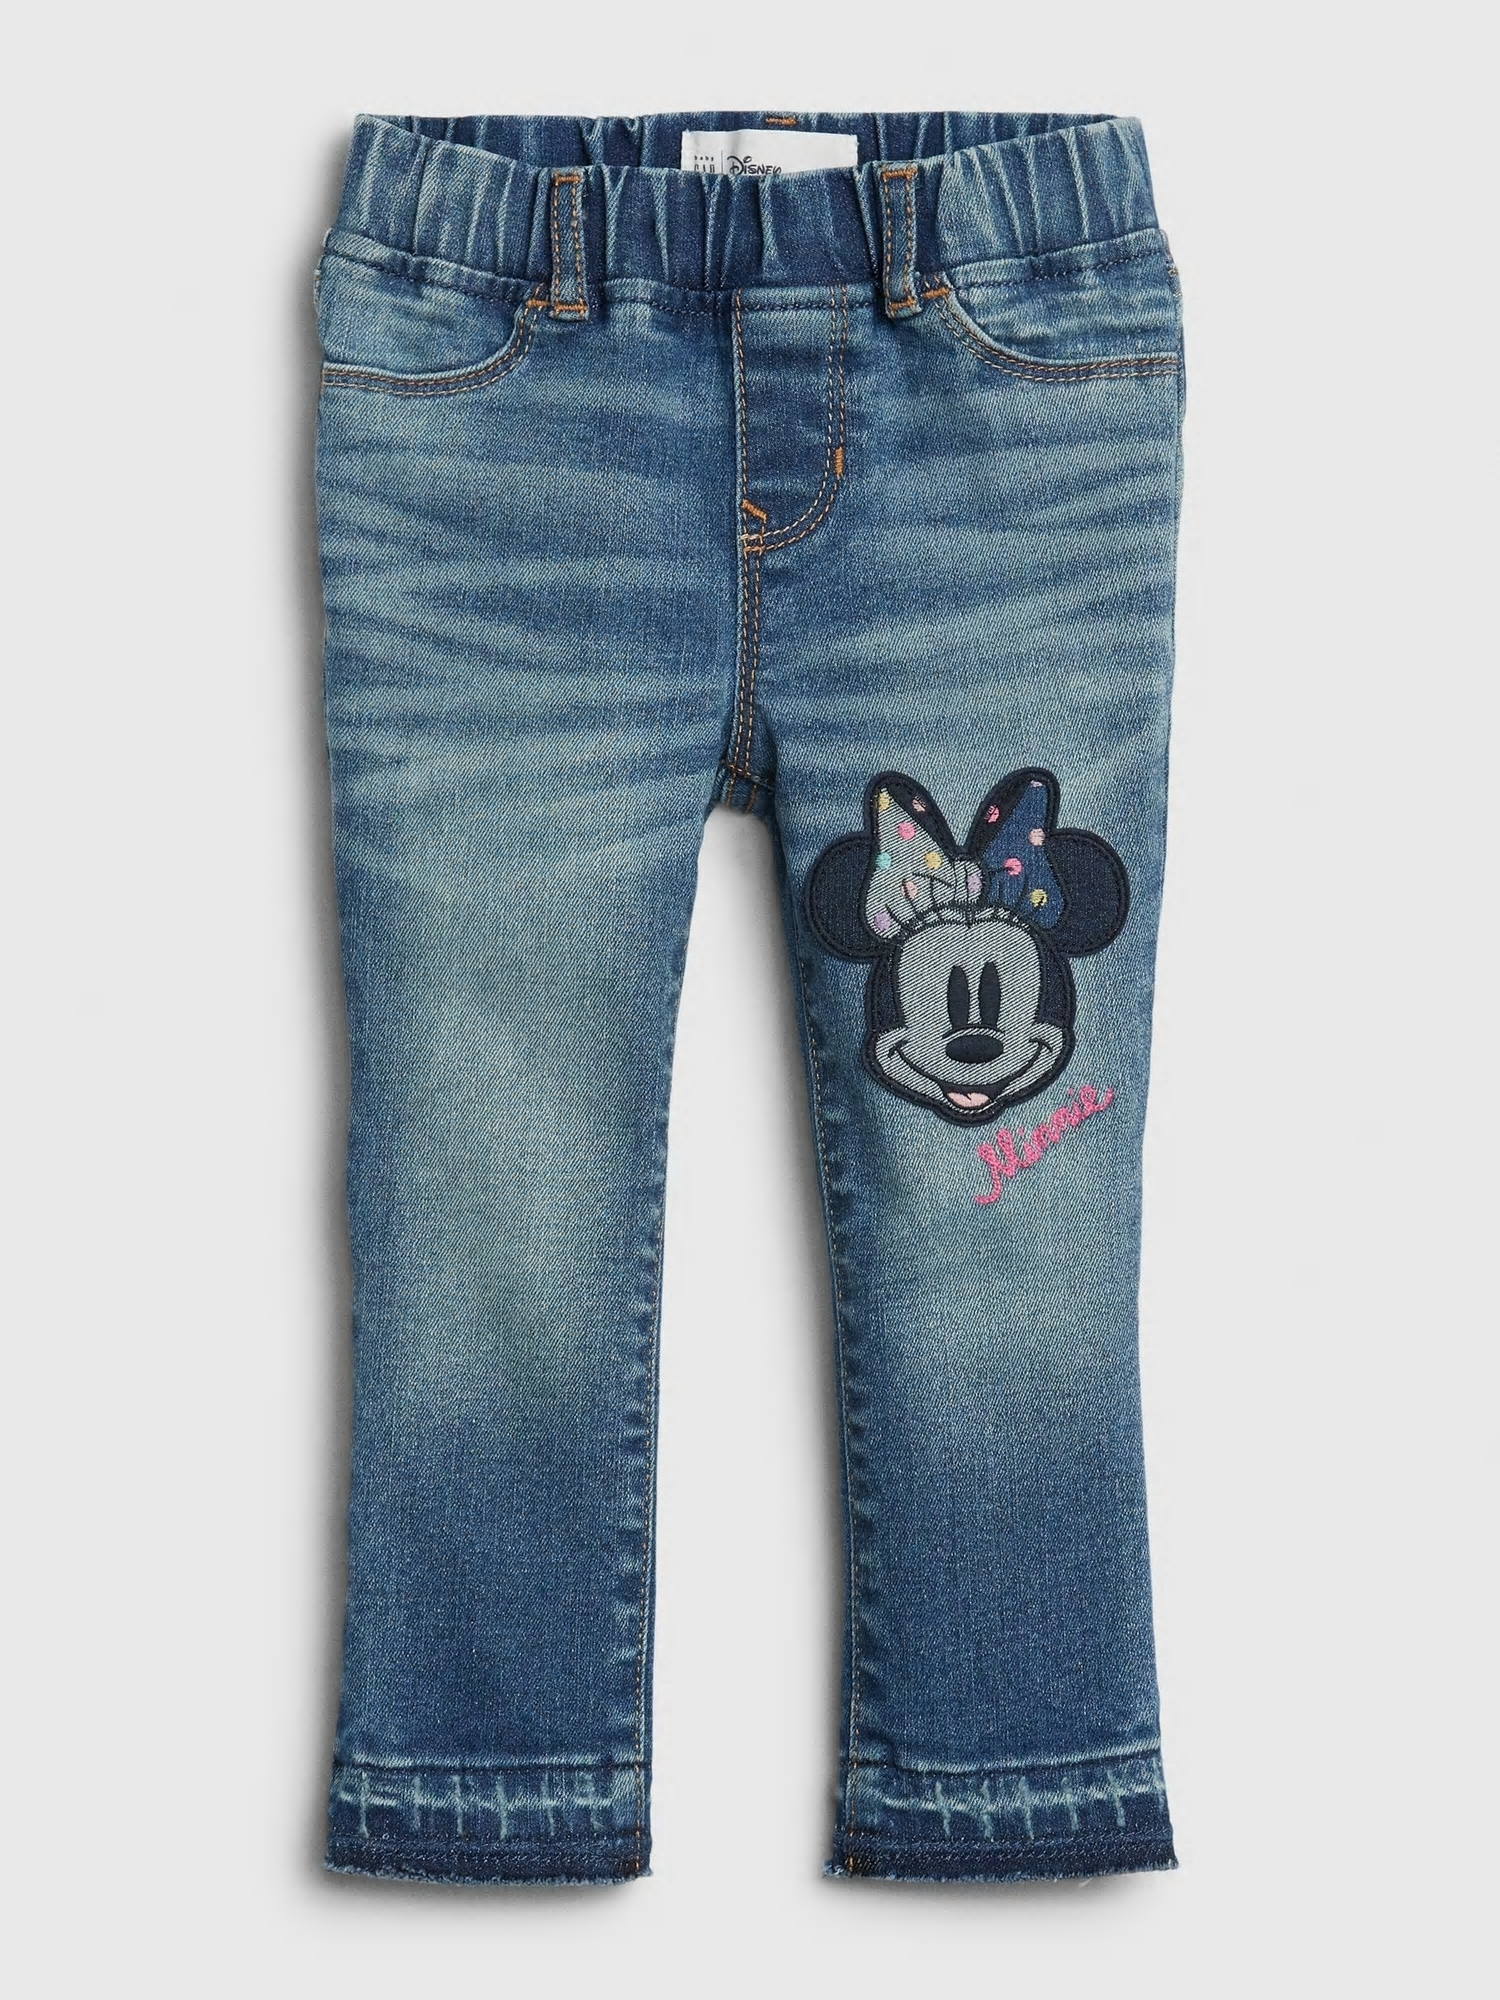 Detské džínsy Disney Minnie Mouse pull-on jeggings (1)